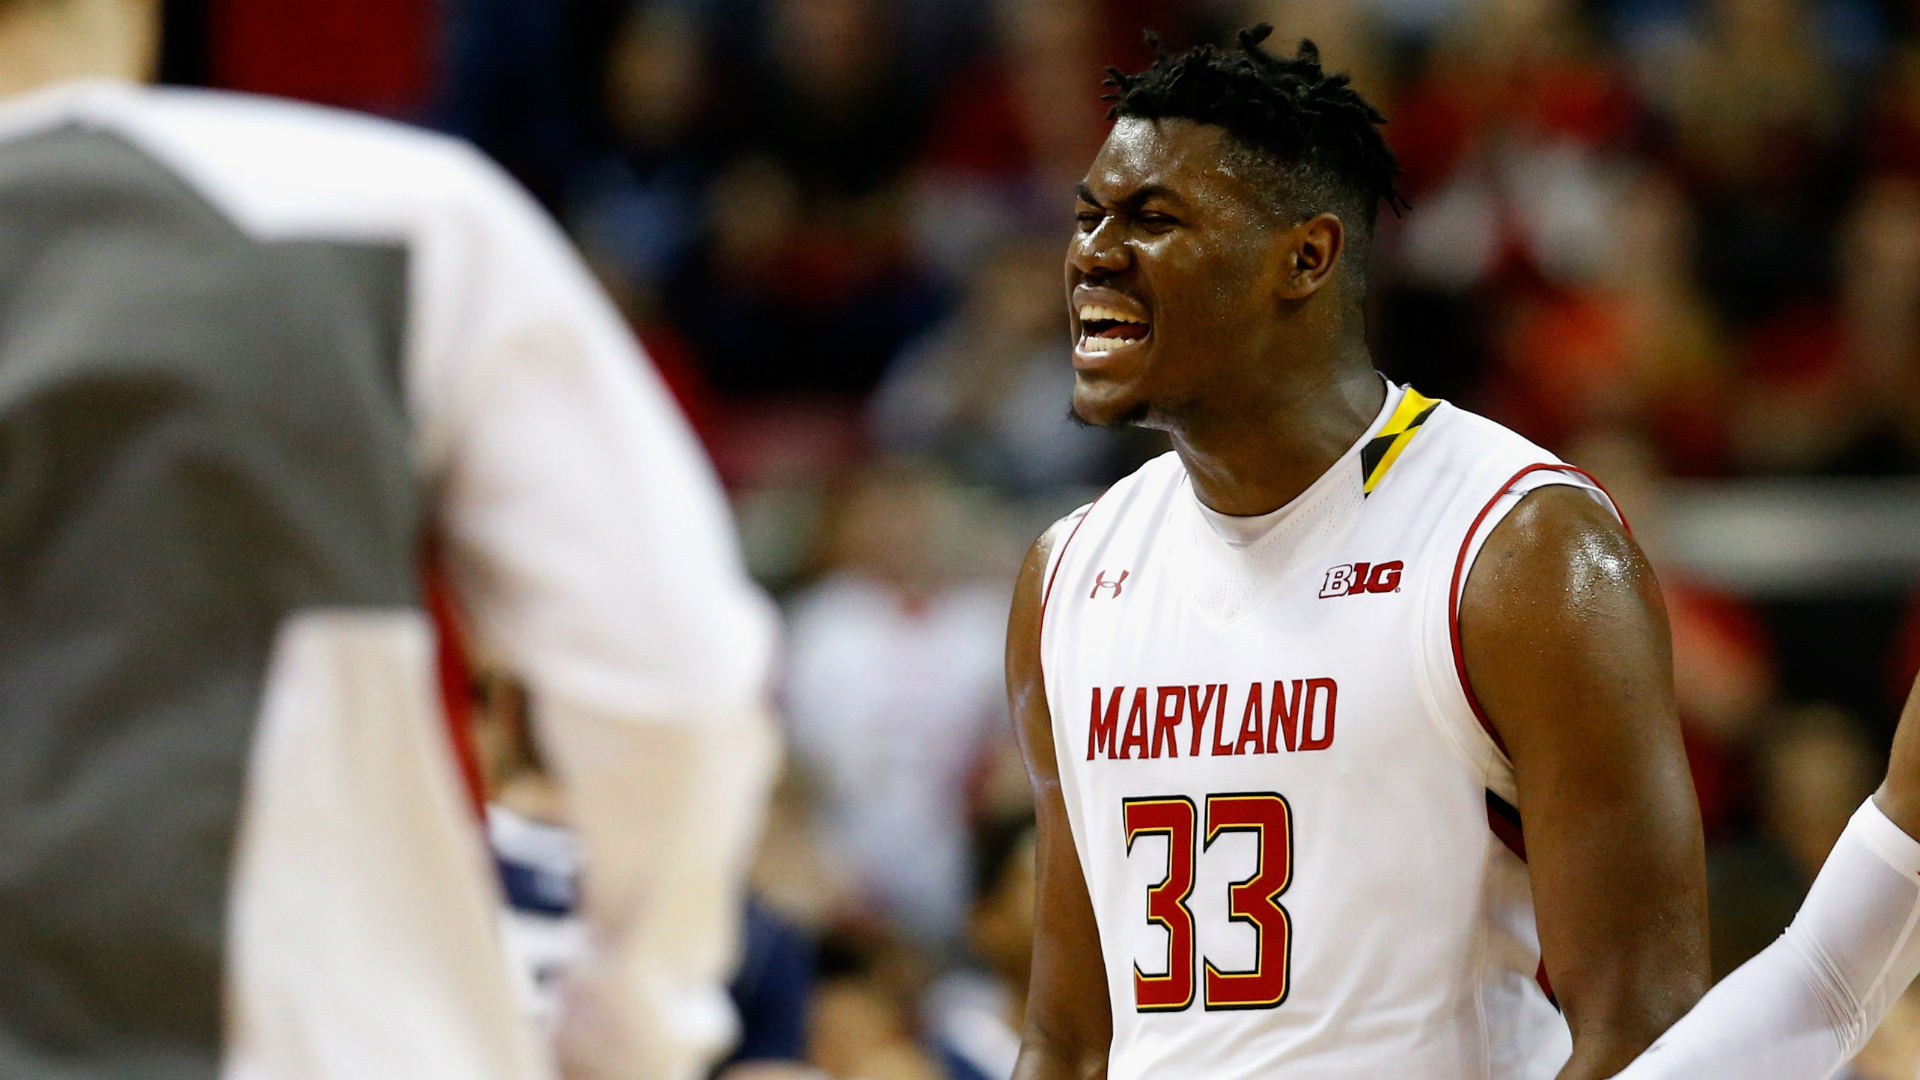 Wisconsin holds on to upset No. 2 Terps